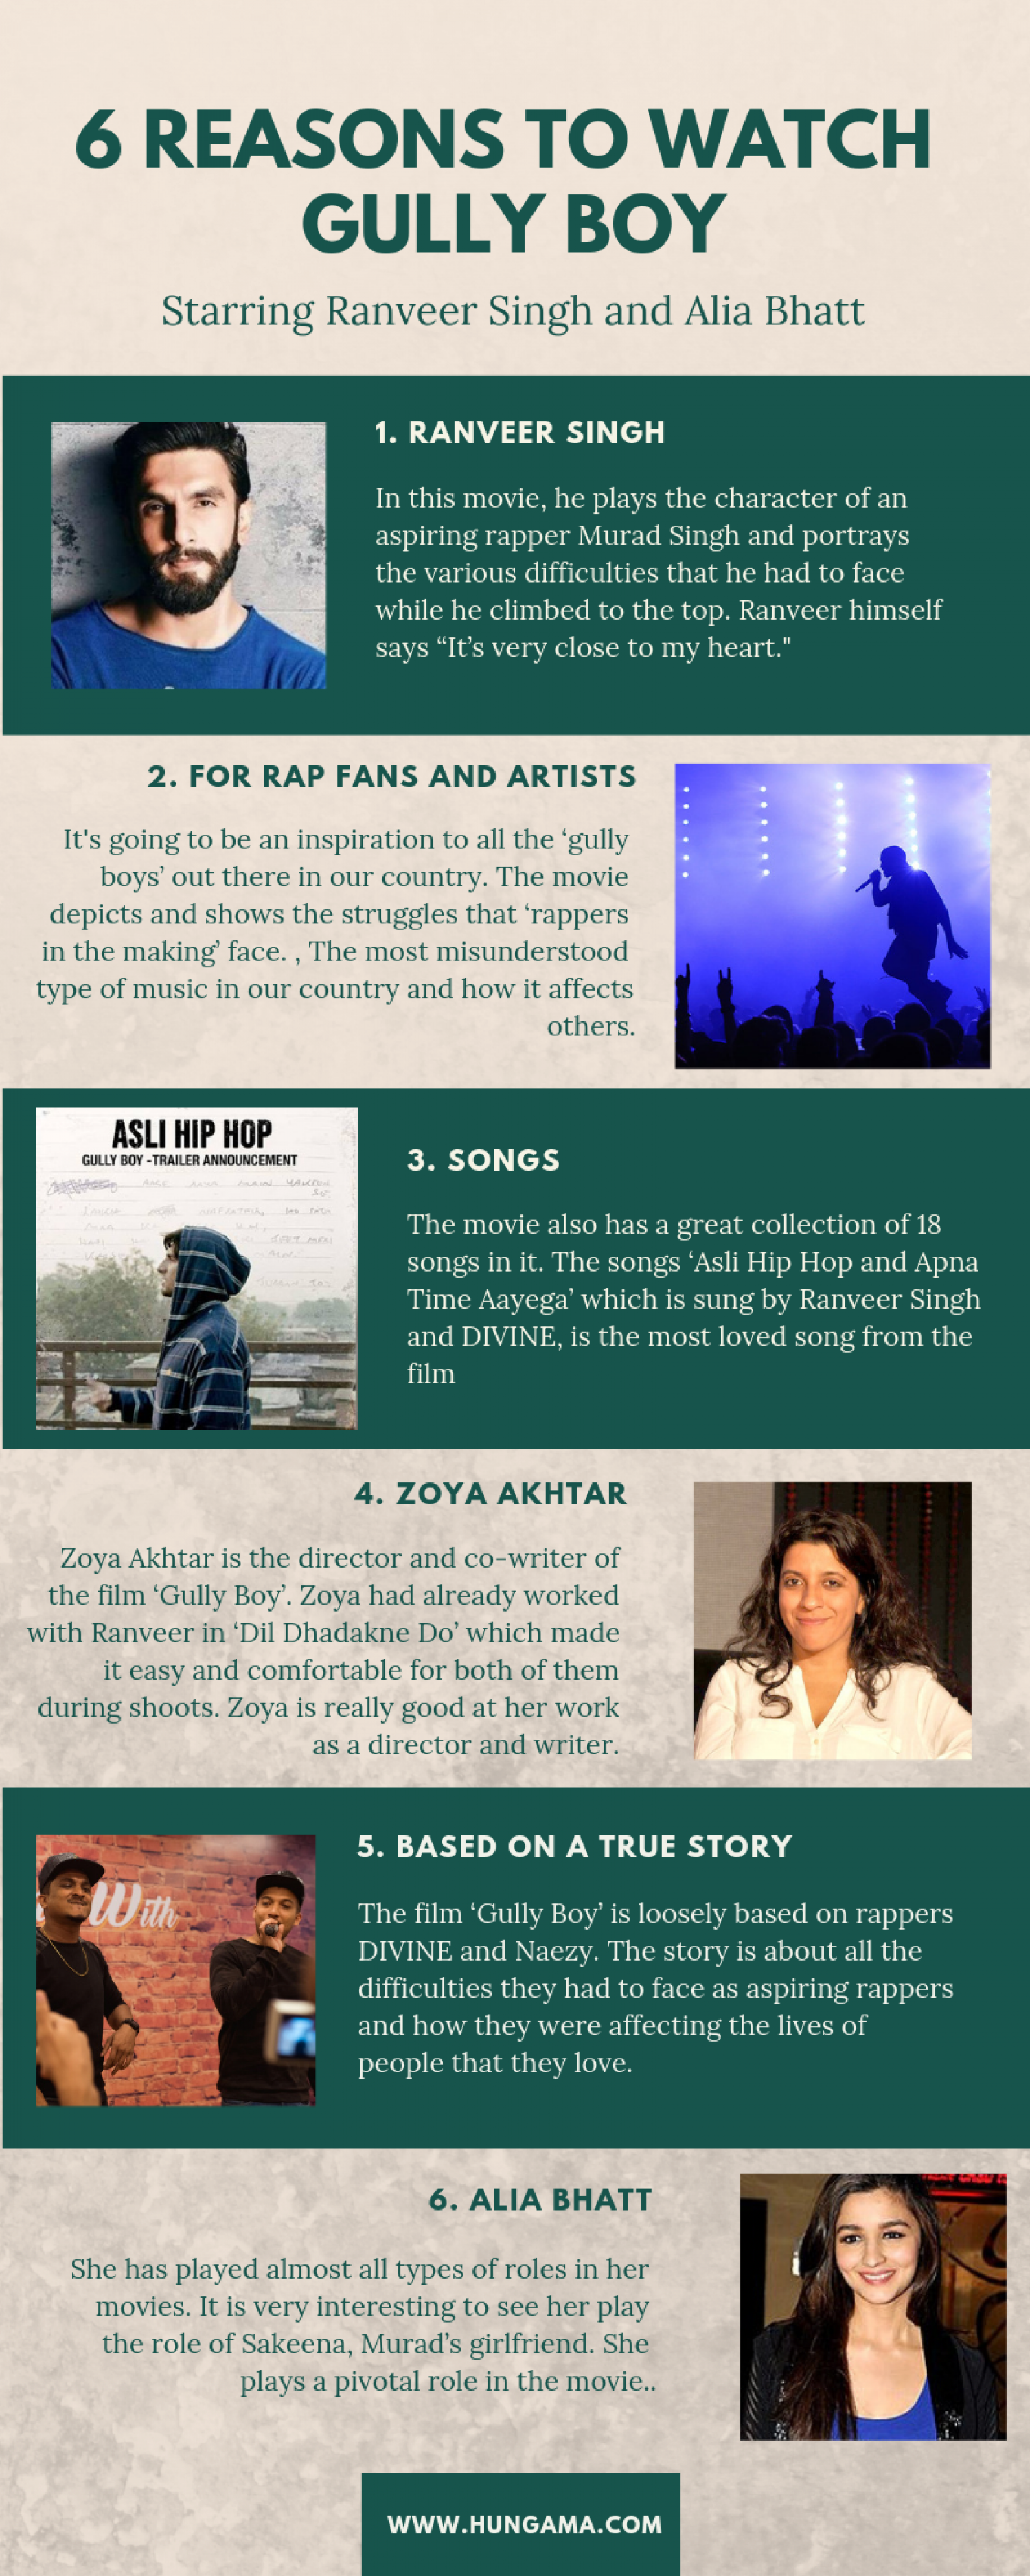 6 Reasons to Watch Gully Boy Infographic